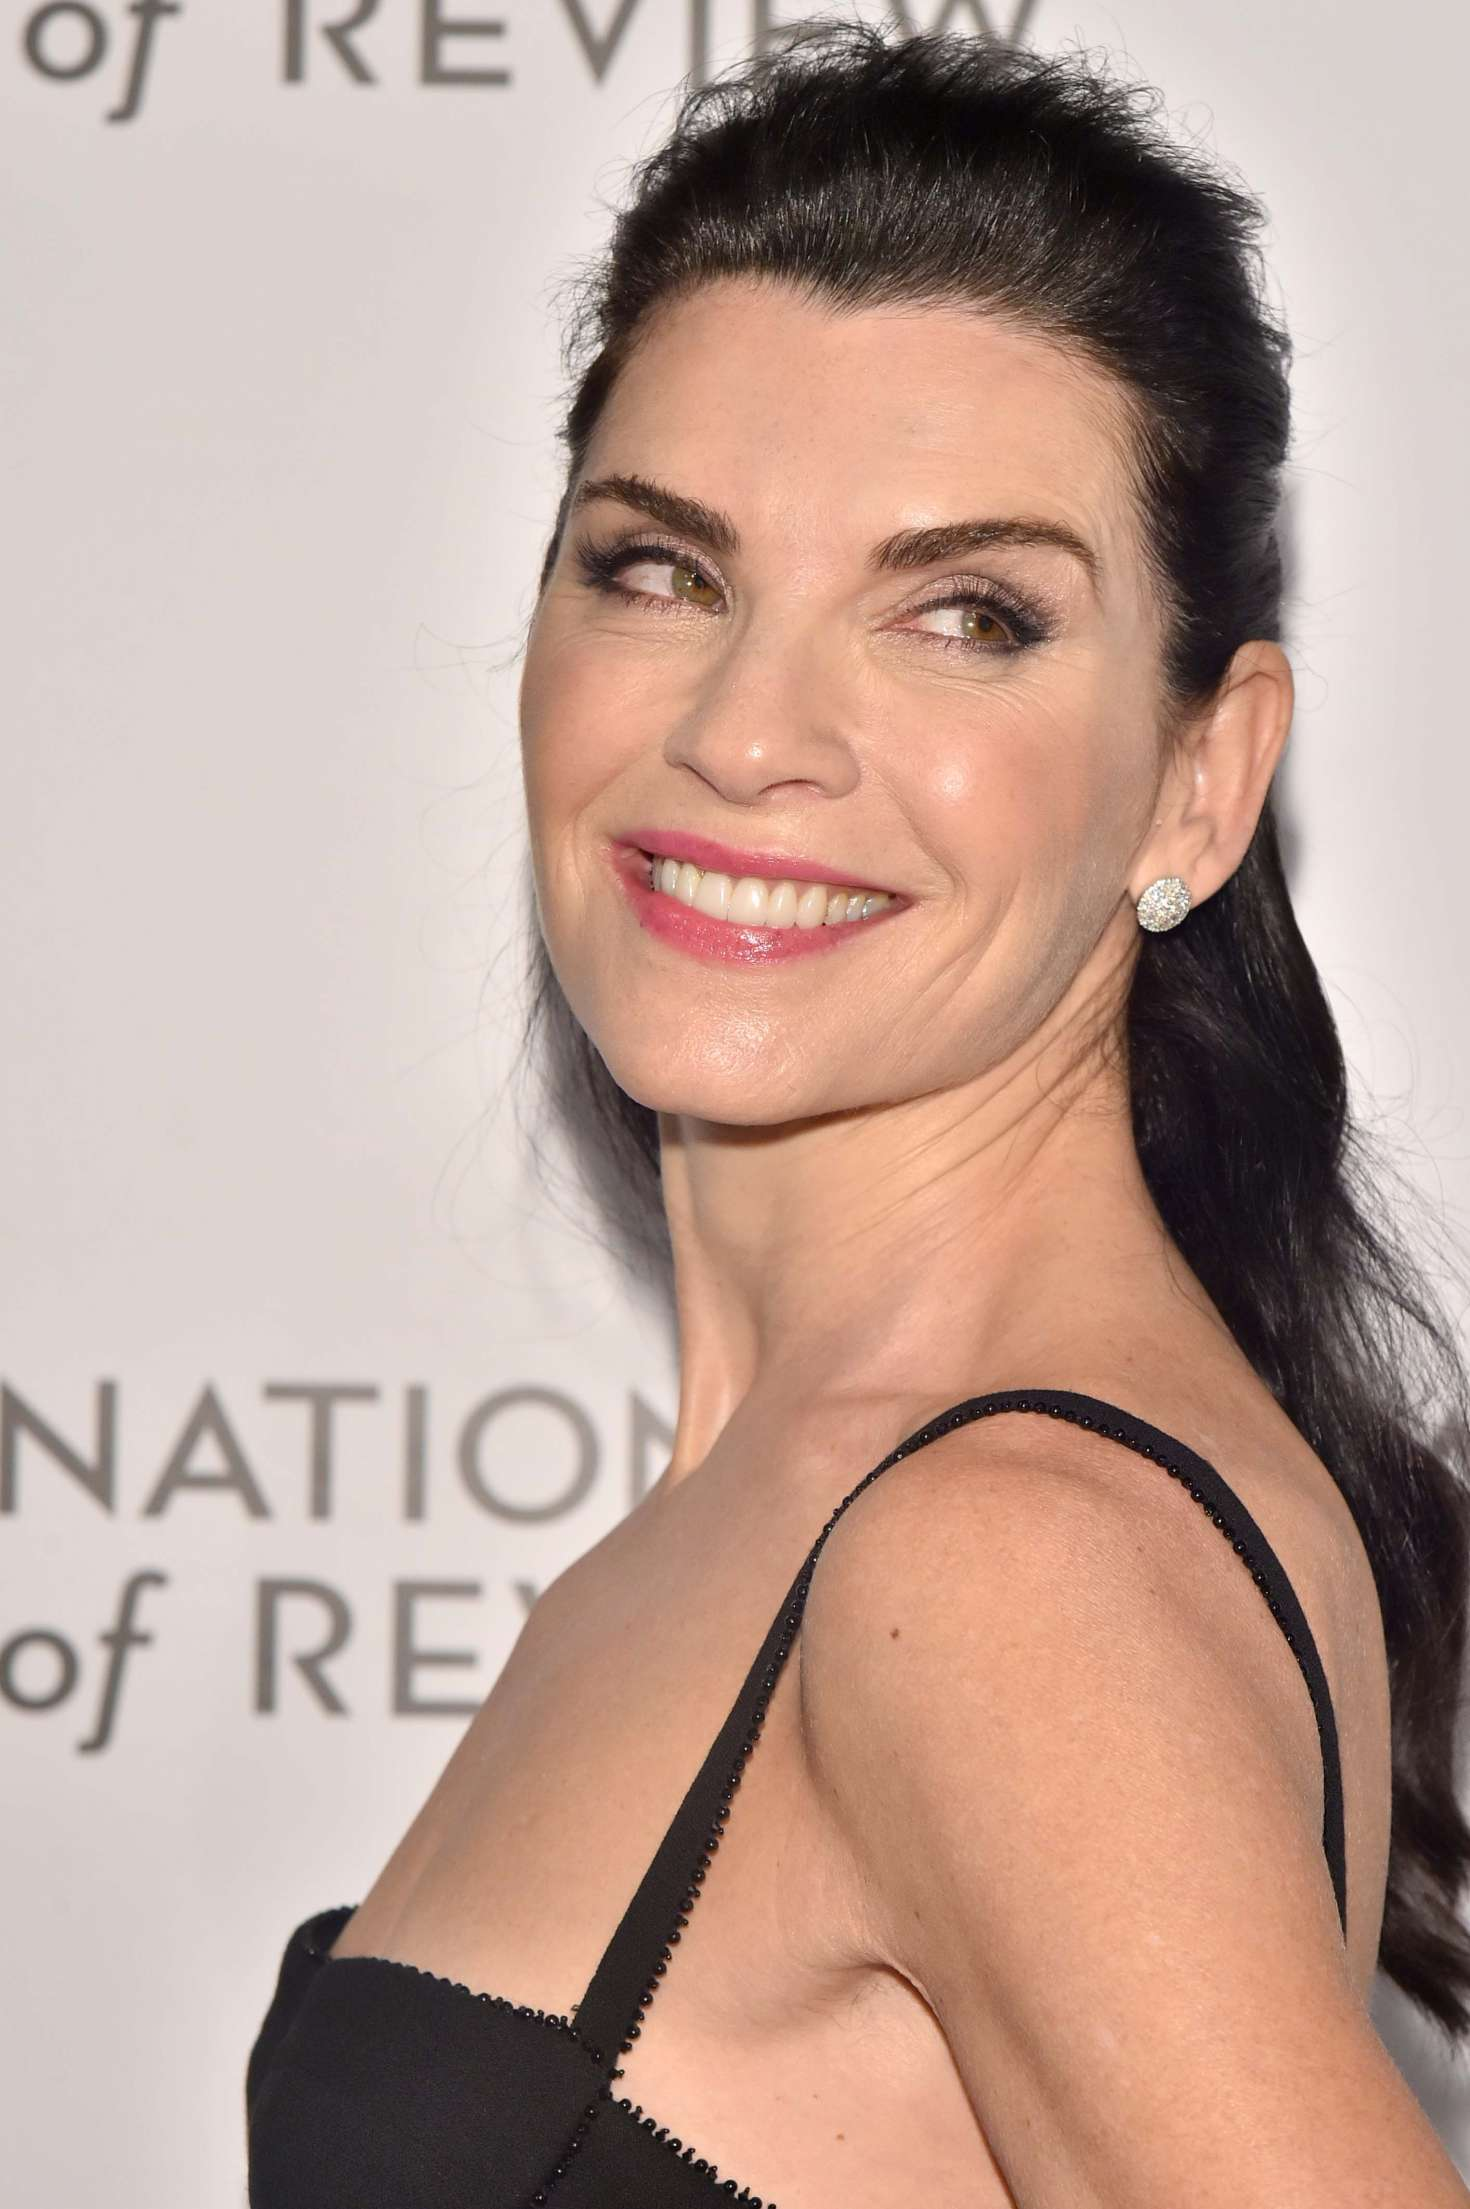 Why Julianna Margulies Hasnt Been on The Good Fight: CBS